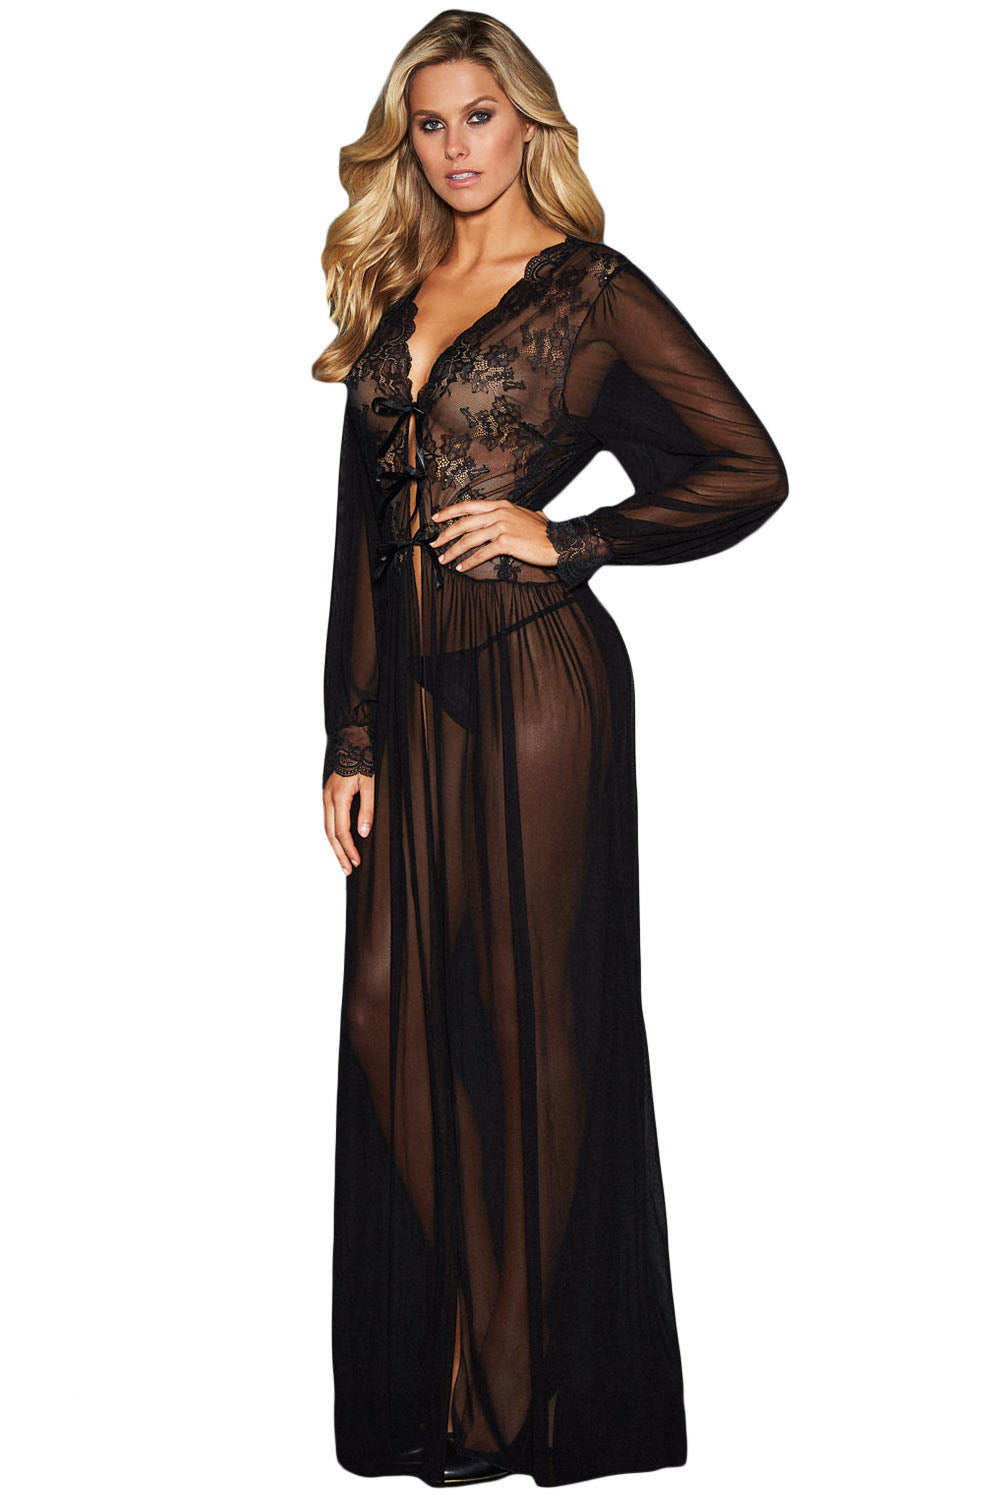 d5164b58e48 Sexy Sheer Long Sleeve Lace Robe with Thong – SEXY AFFORDABLE CLOTHING